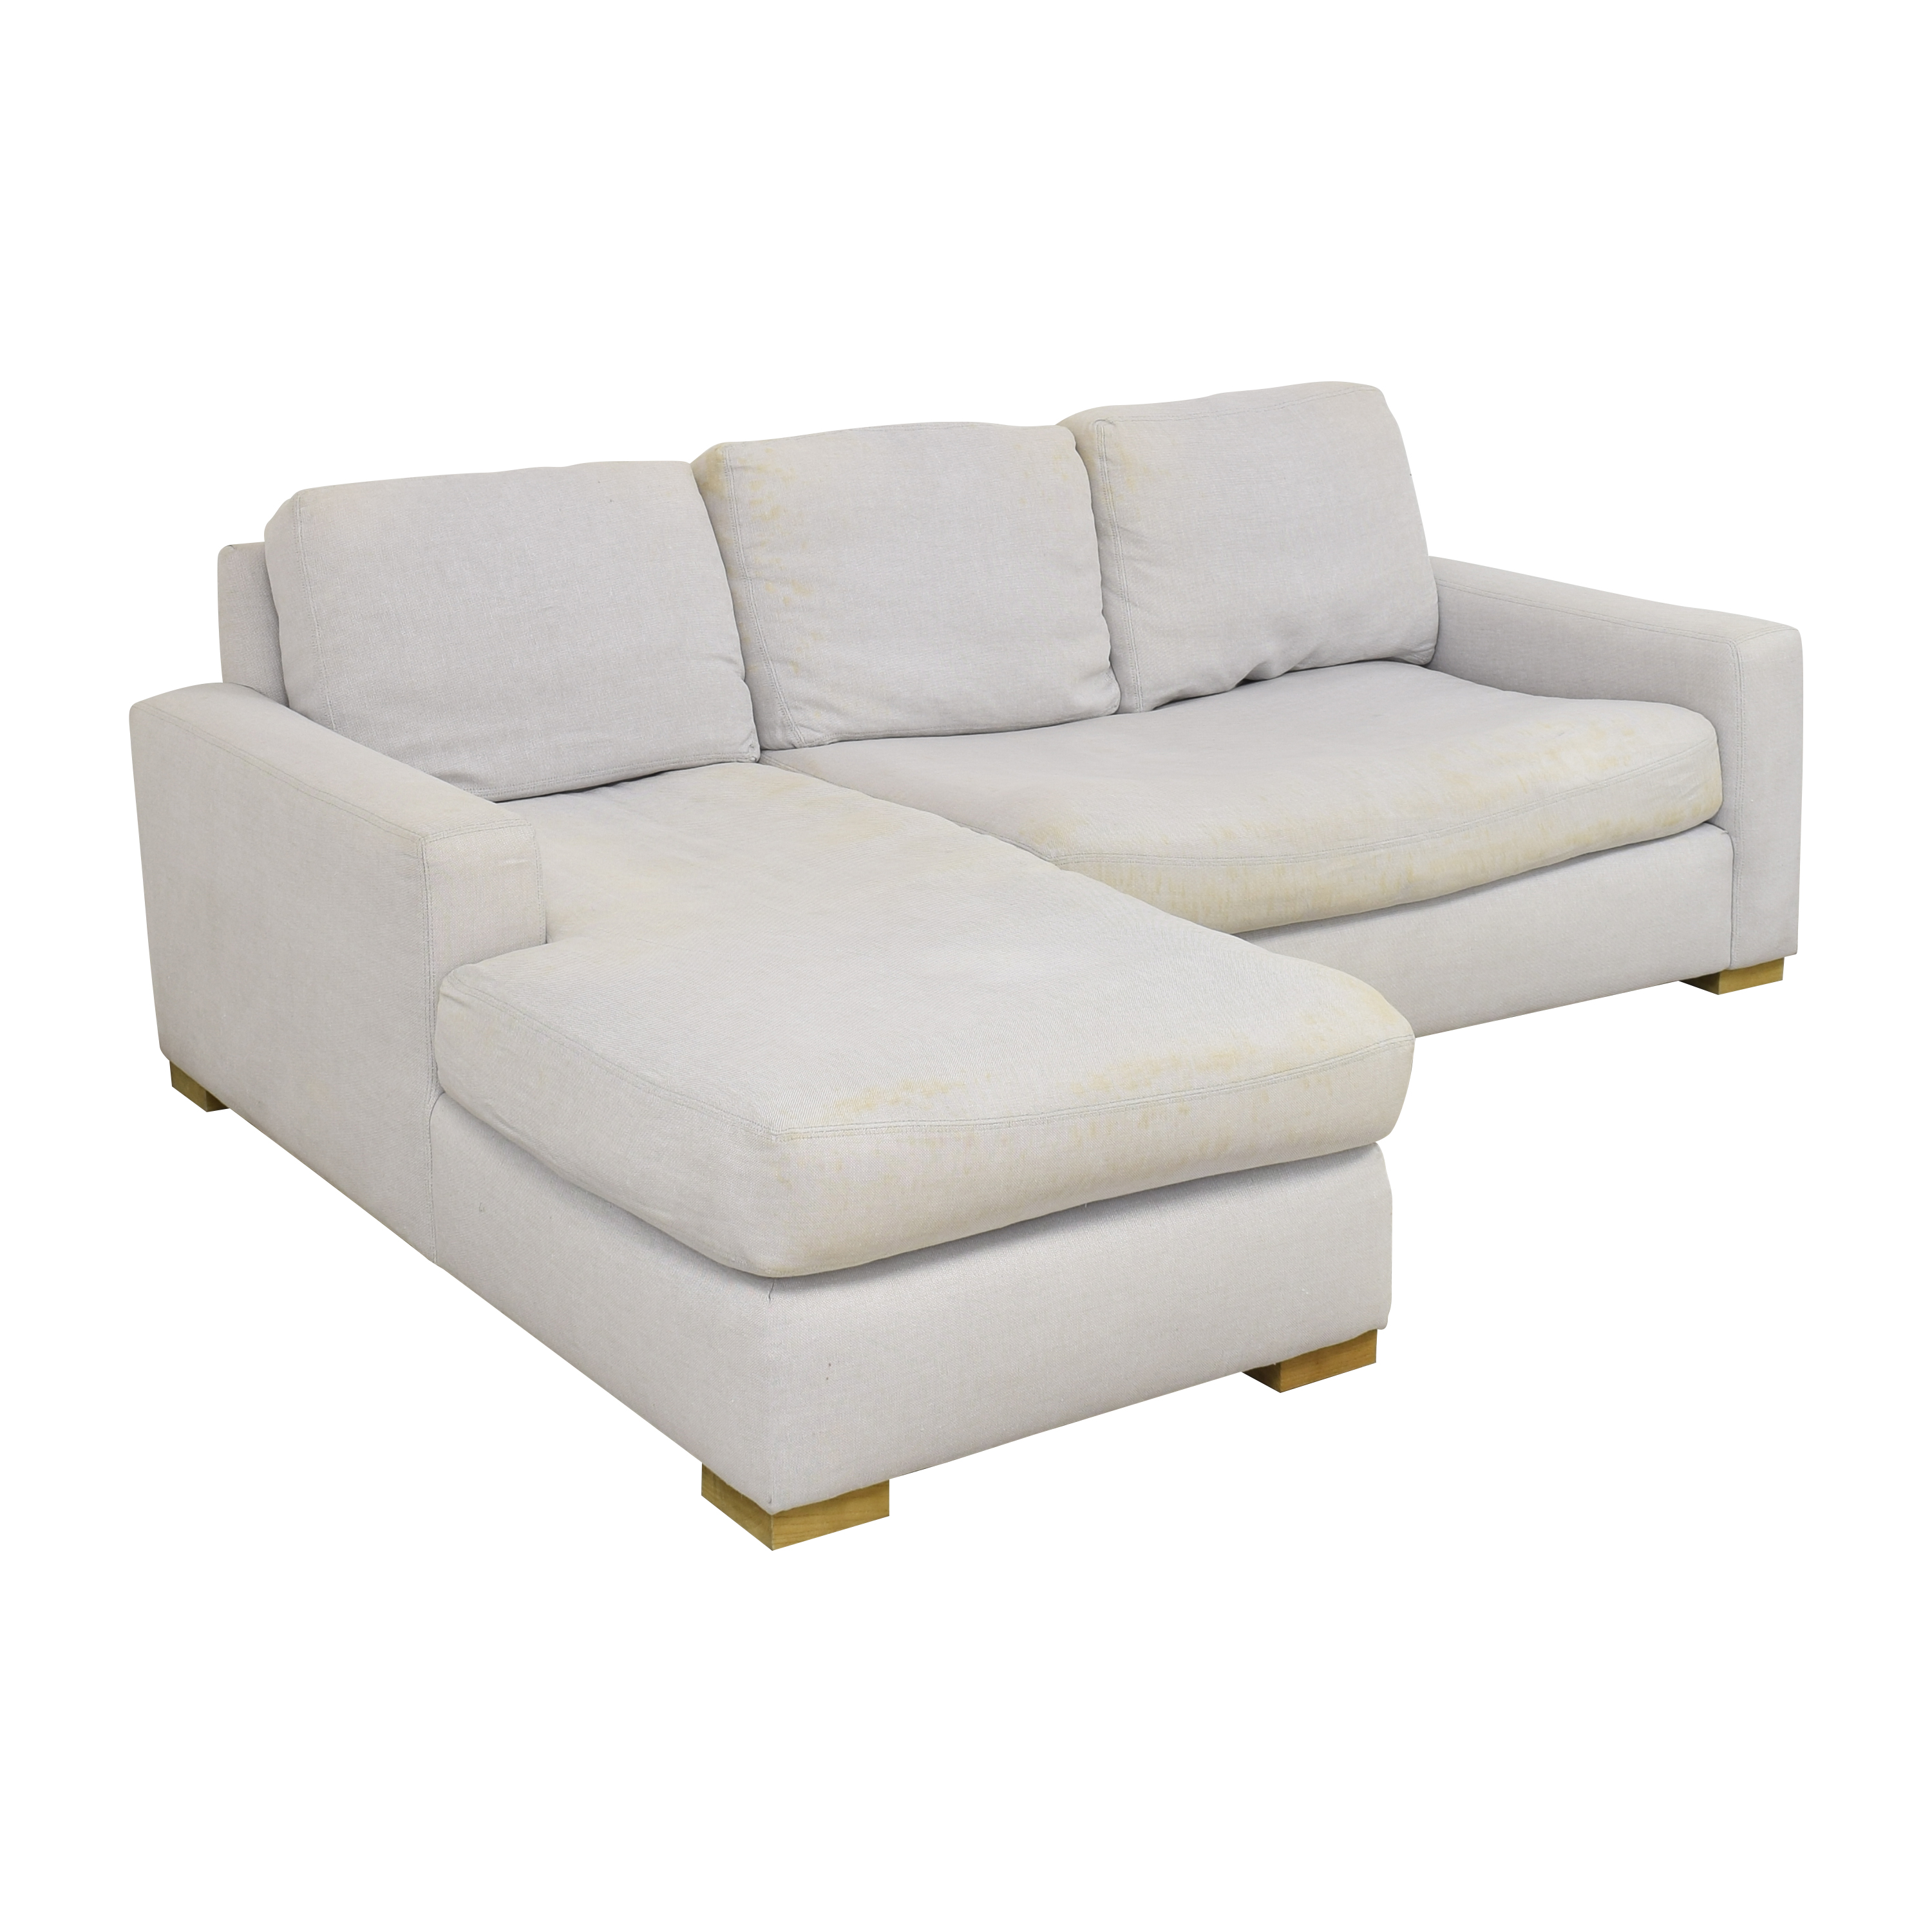 Restoration Hardware Restoration Hardware Chaise Sectional Sofa  second hand